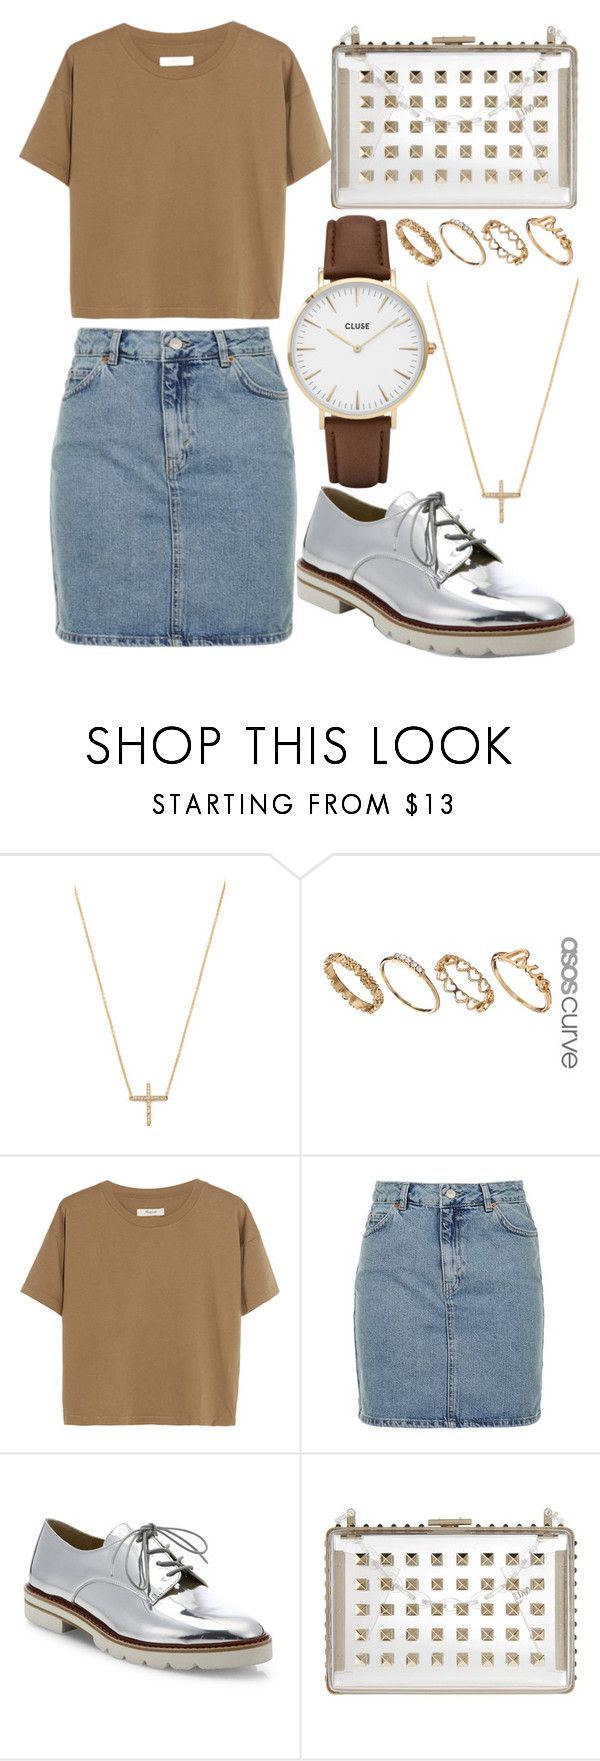 """""""309."""" by plaraa on Polyvore featuring Jennifer Meyer Jewelry, ASOS, Madewell, Topshop, Stuart Weitzman, Valentino and CLUSE"""